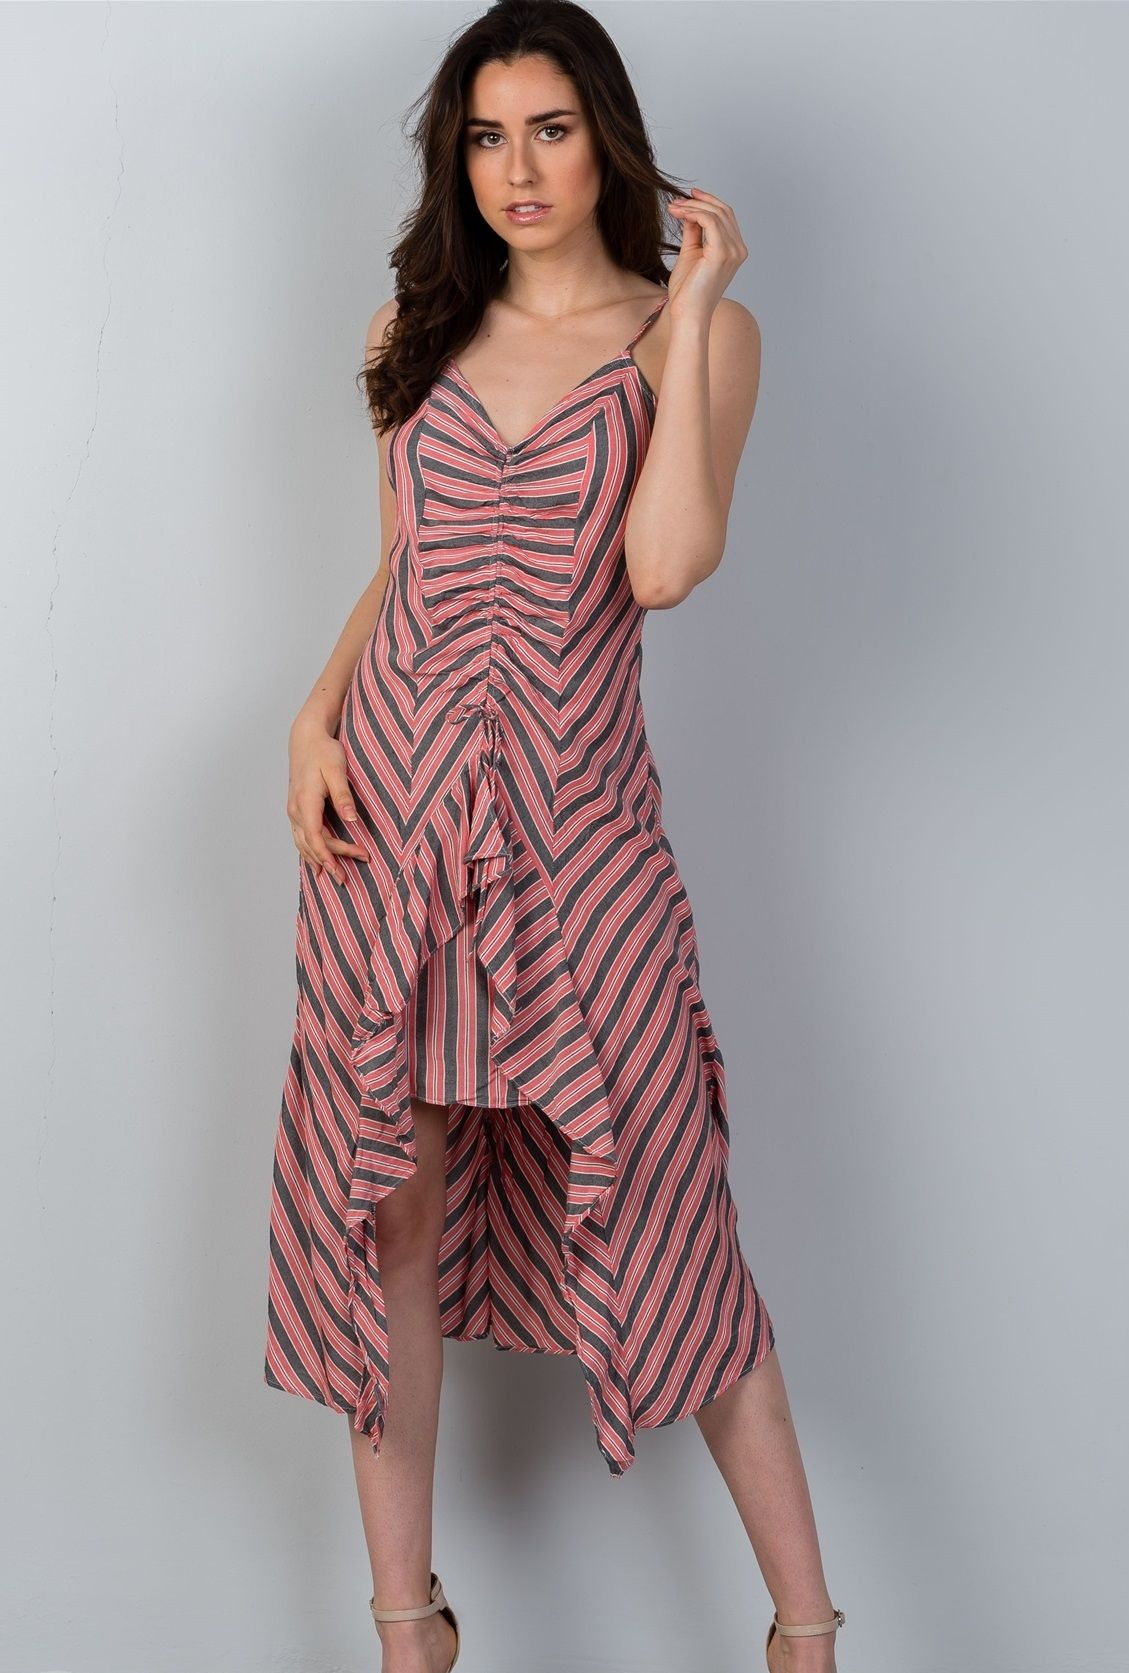 2bfeb7857f Ladies fashion high low design stripes asymmetrical ruched front midi dress.  Sale   18.85. Free Shipping.